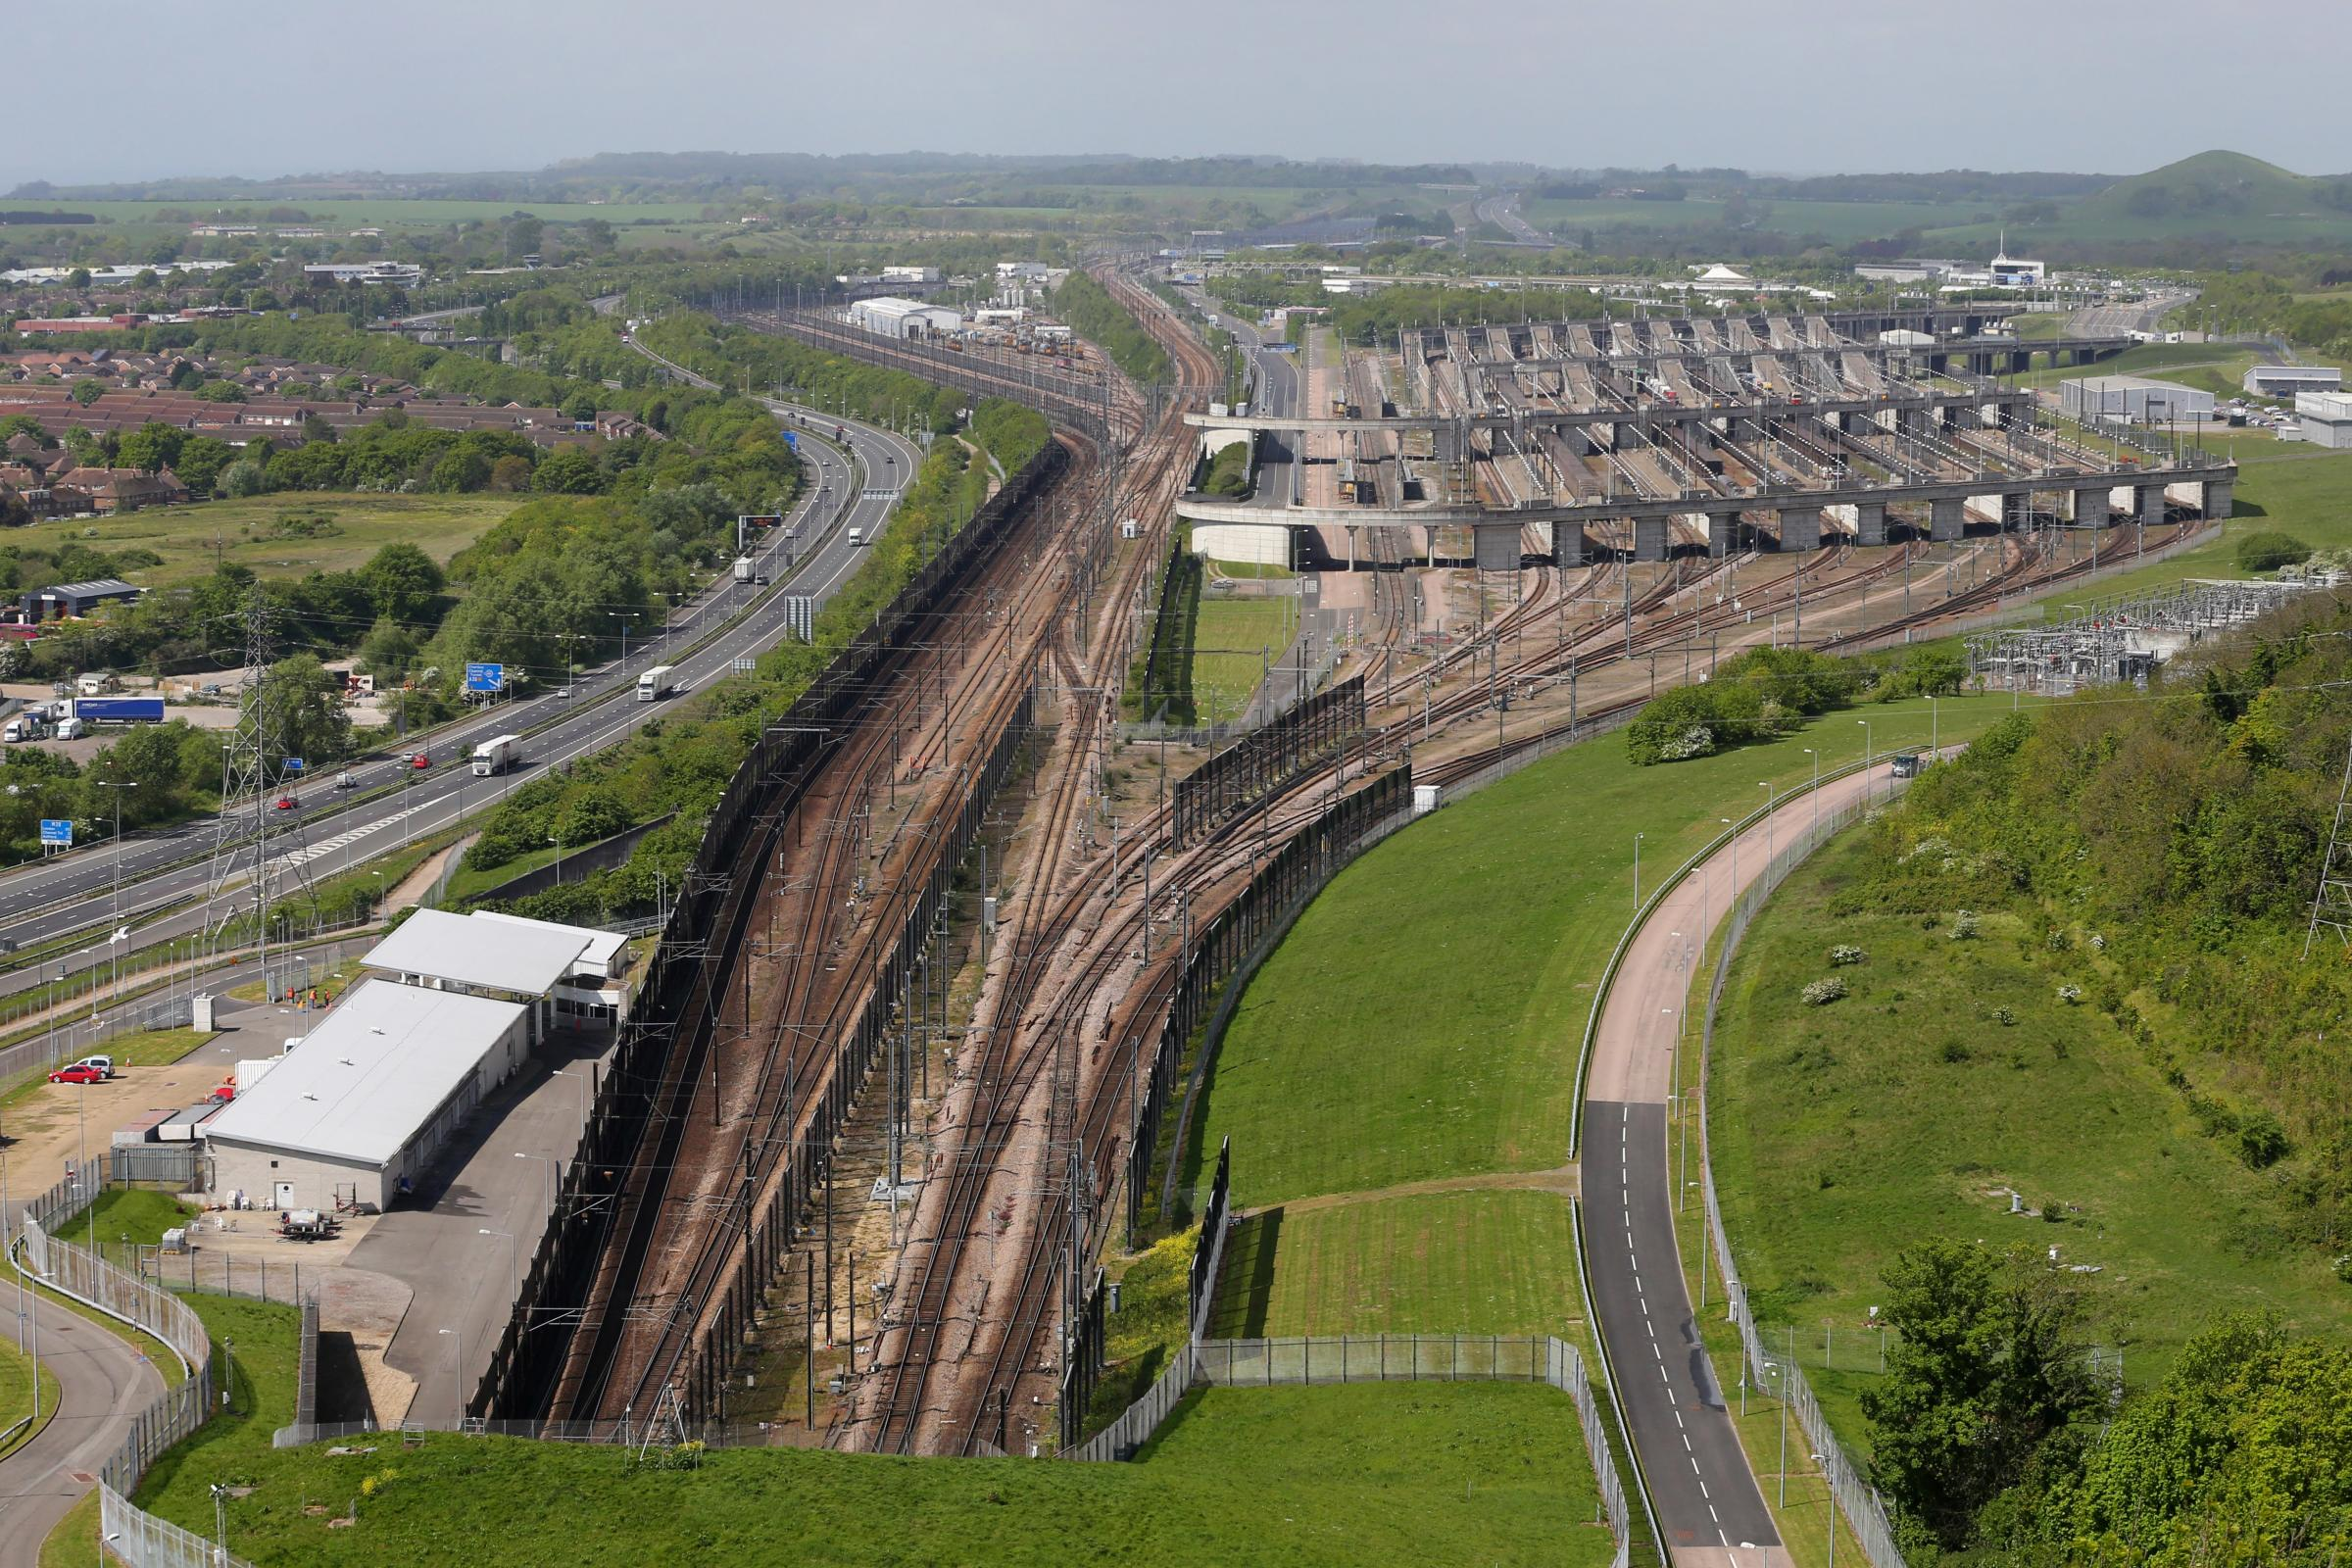 The Eurotunnel site in Folkestone, Kent